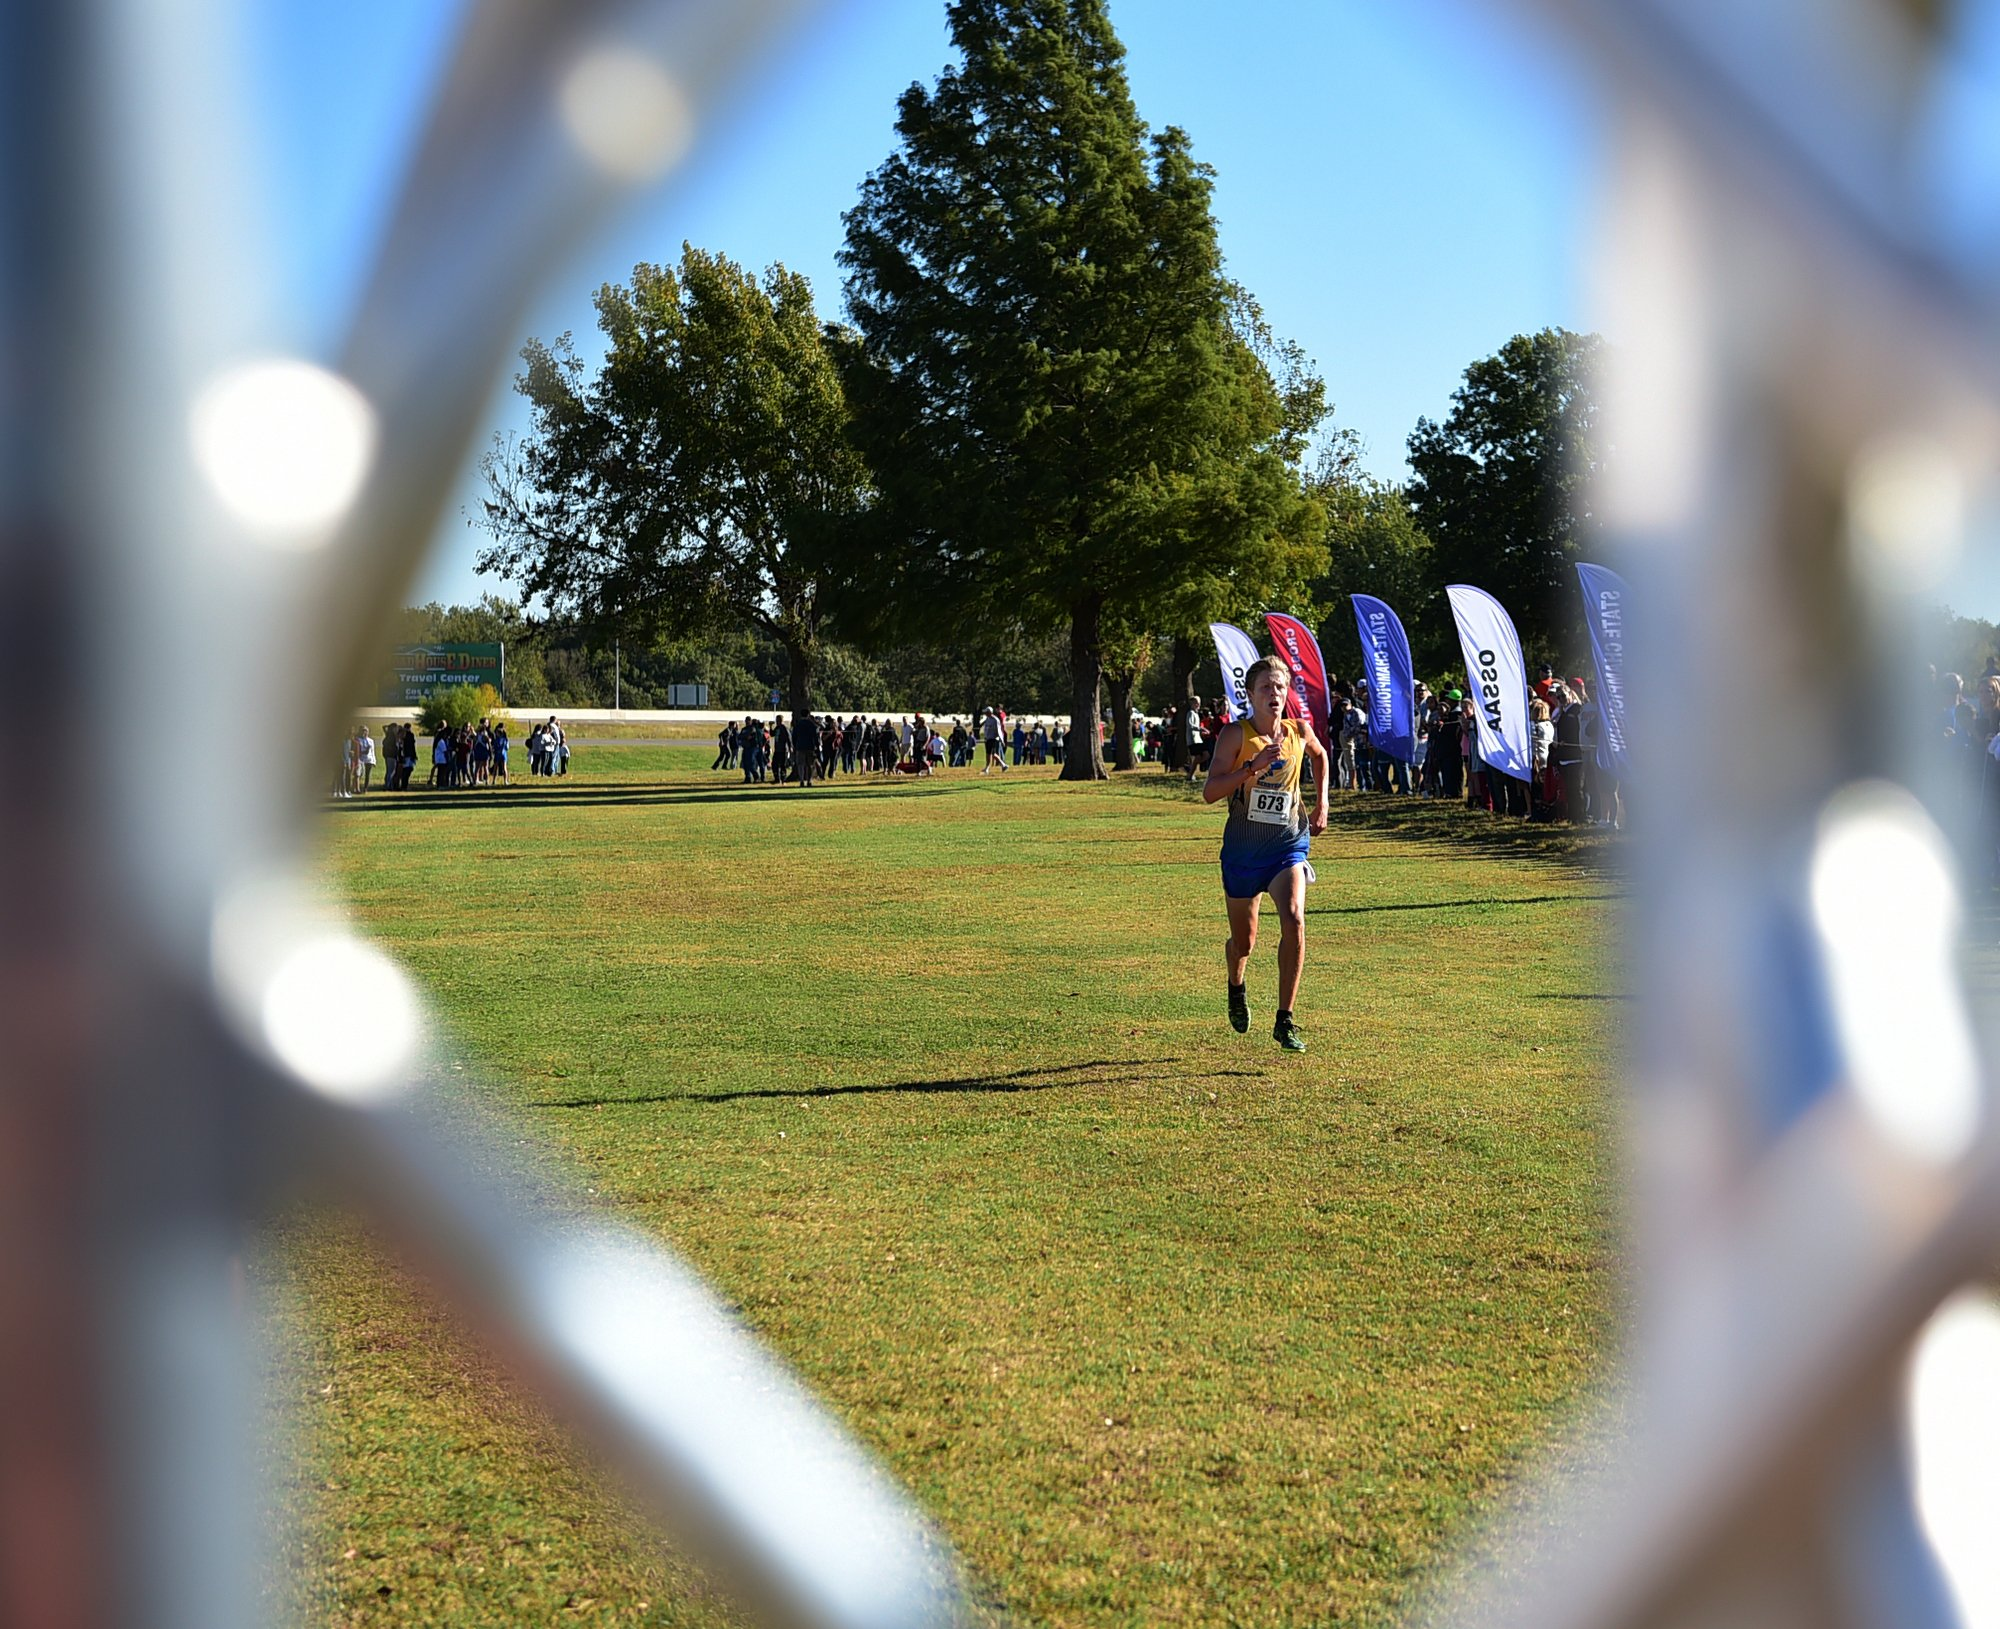 2a state cross country meet